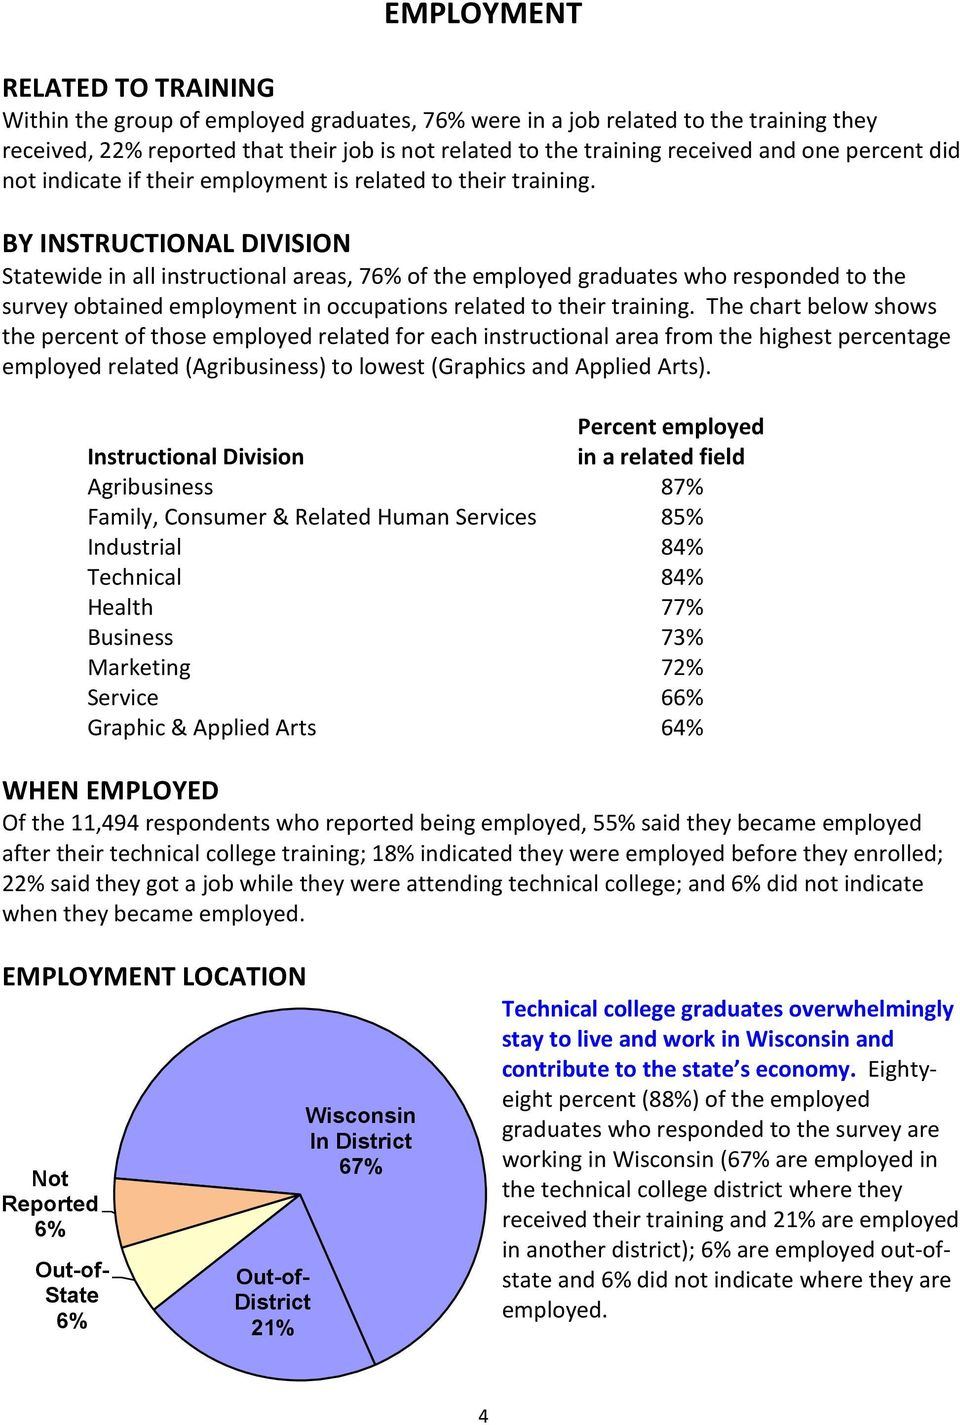 BY INSTRUCTIONAL DIVISION Statewide in all instructional areas, 76% of the employed graduates who responded to the survey obtained employment in occupations related to their training.